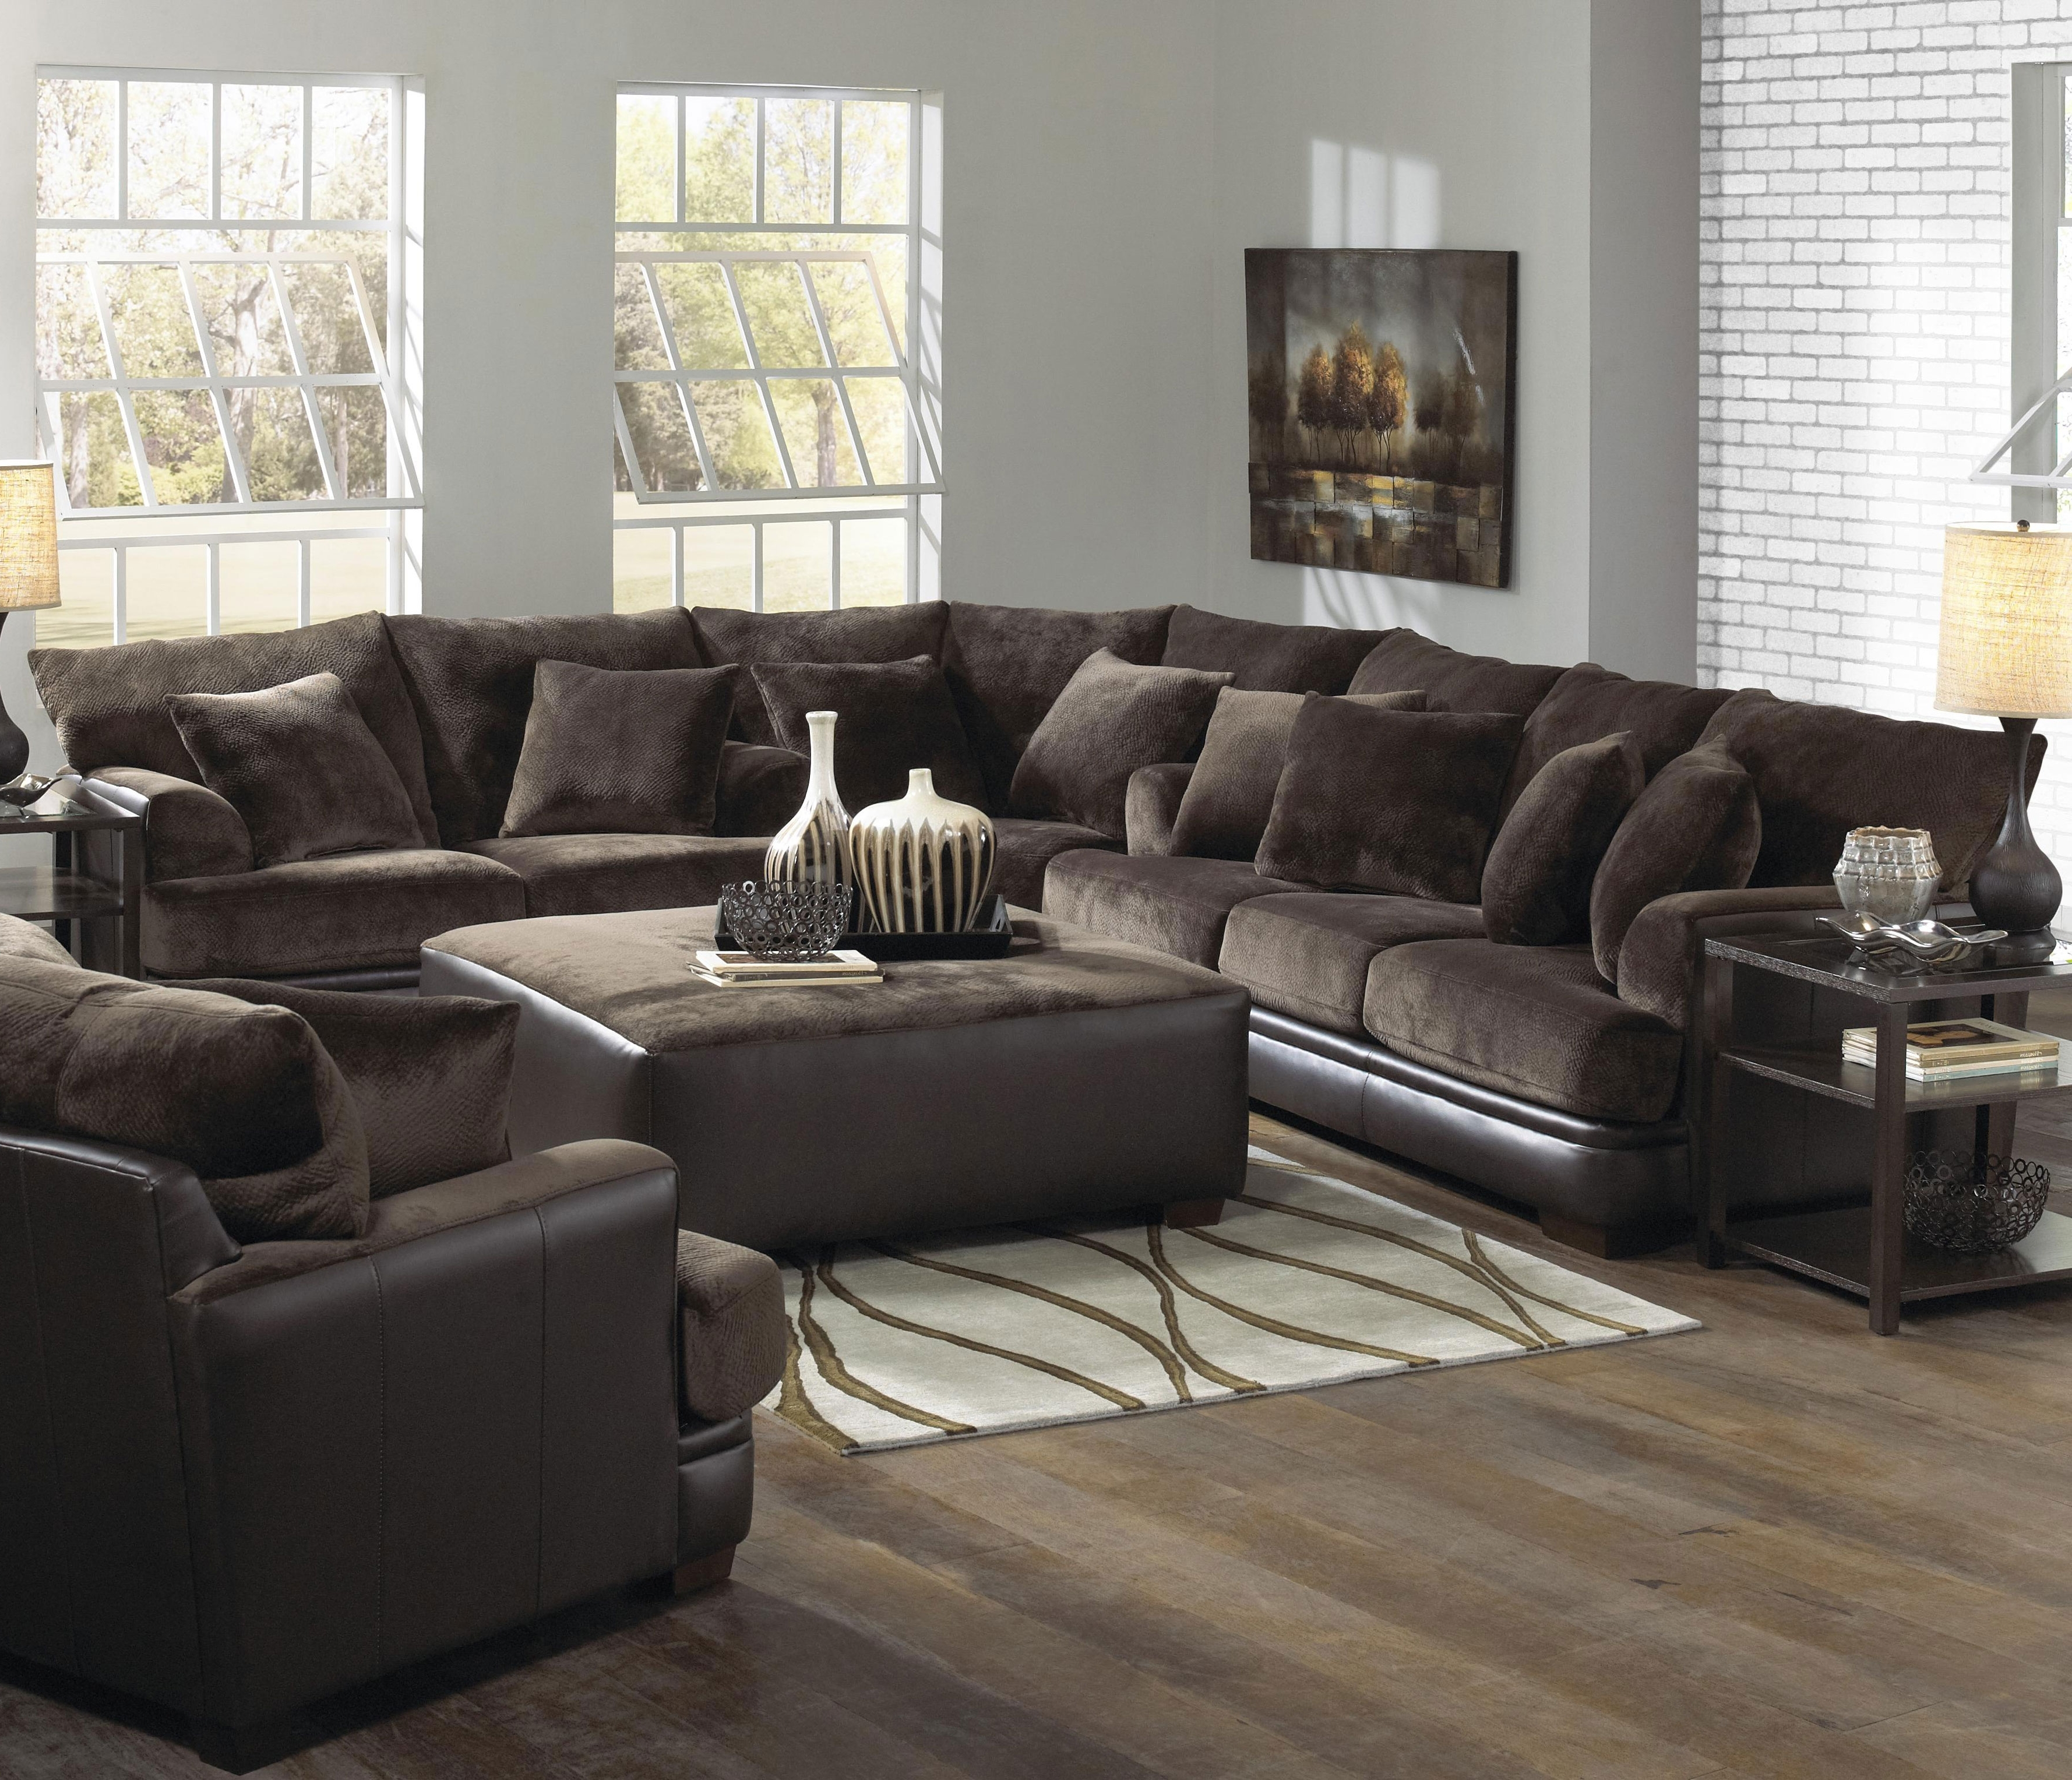 C Shaped Sofas In Popular Sectional Sofa: The Best Design C Shaped Sofa Sectional C Shaped (View 8 of 20)